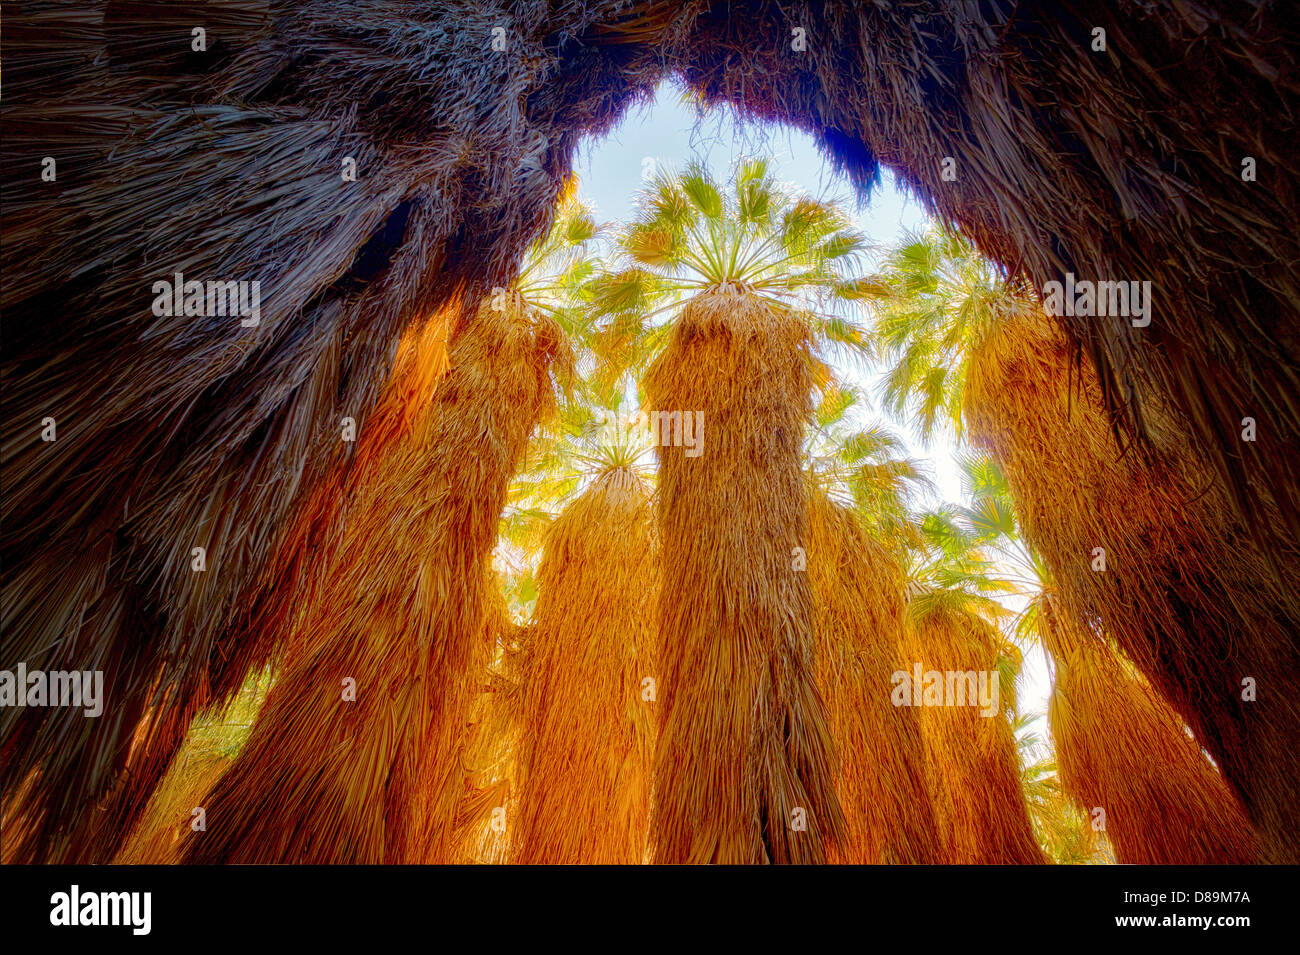 Looking up into grove of California Fan Palm. Coachella Valley Preserve. California - Stock Image